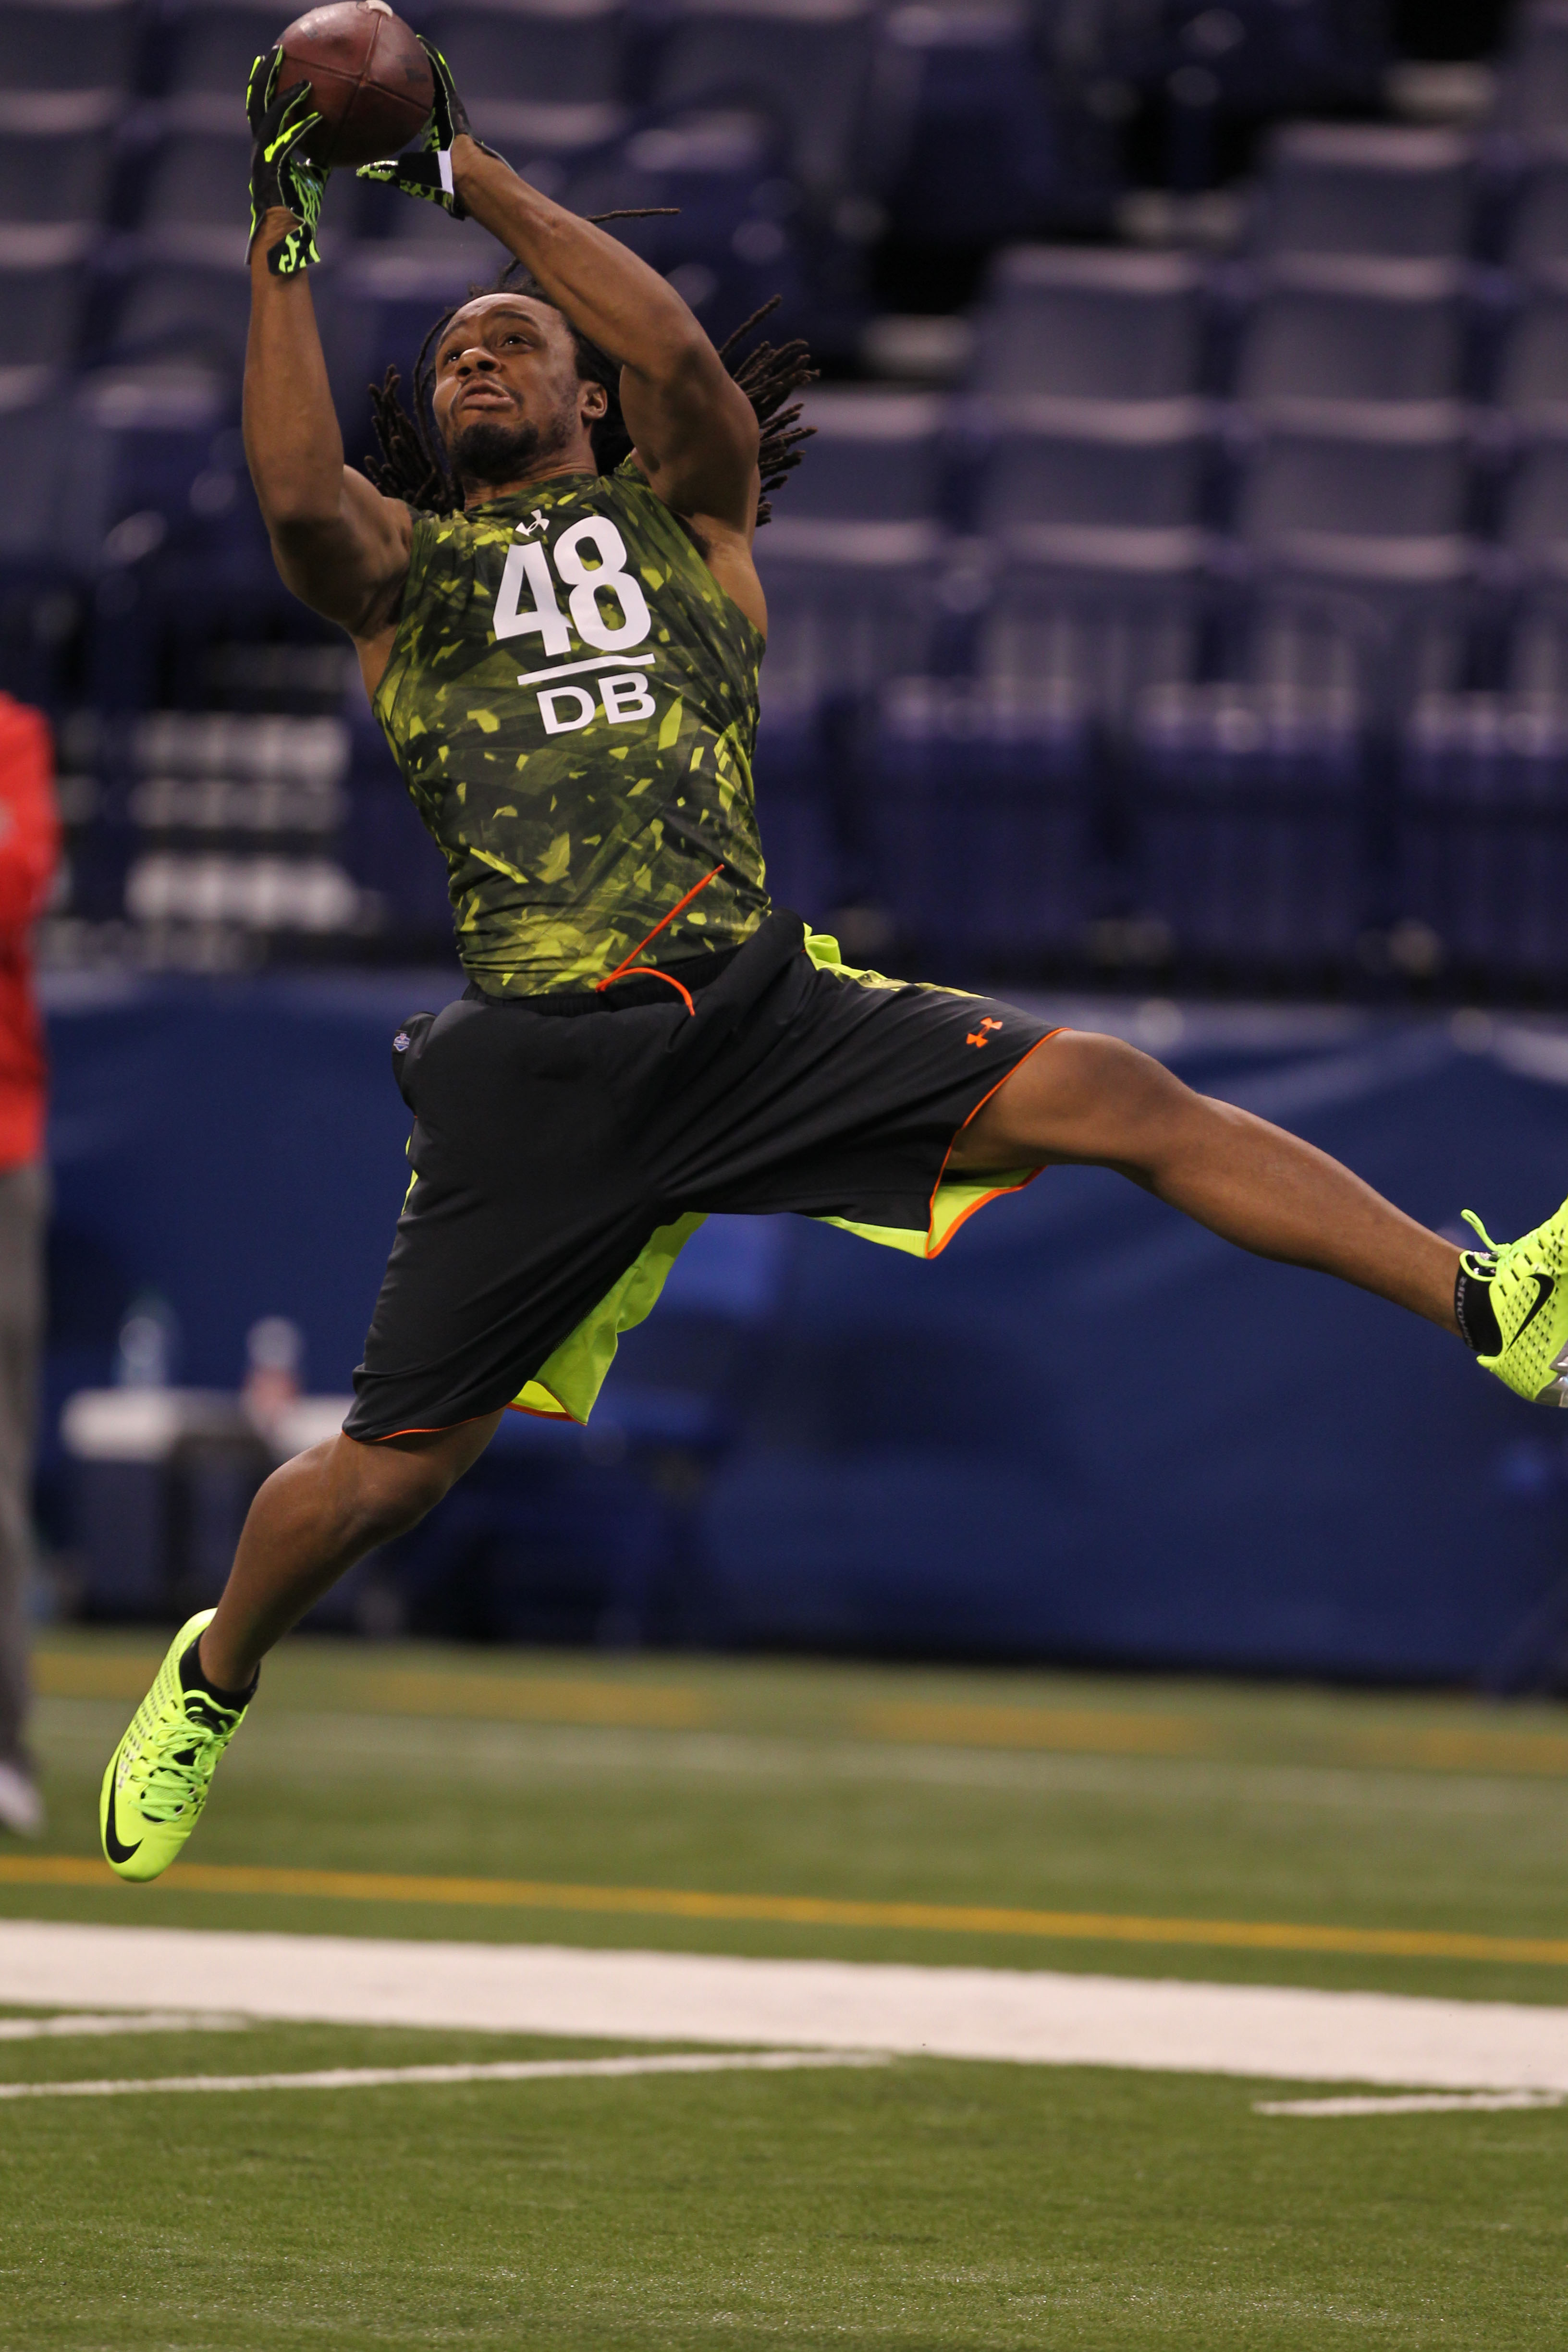 Fresno State DB Phillip Thomas catches a pass during the NFL scouting combine. (USA TODAY Sports)